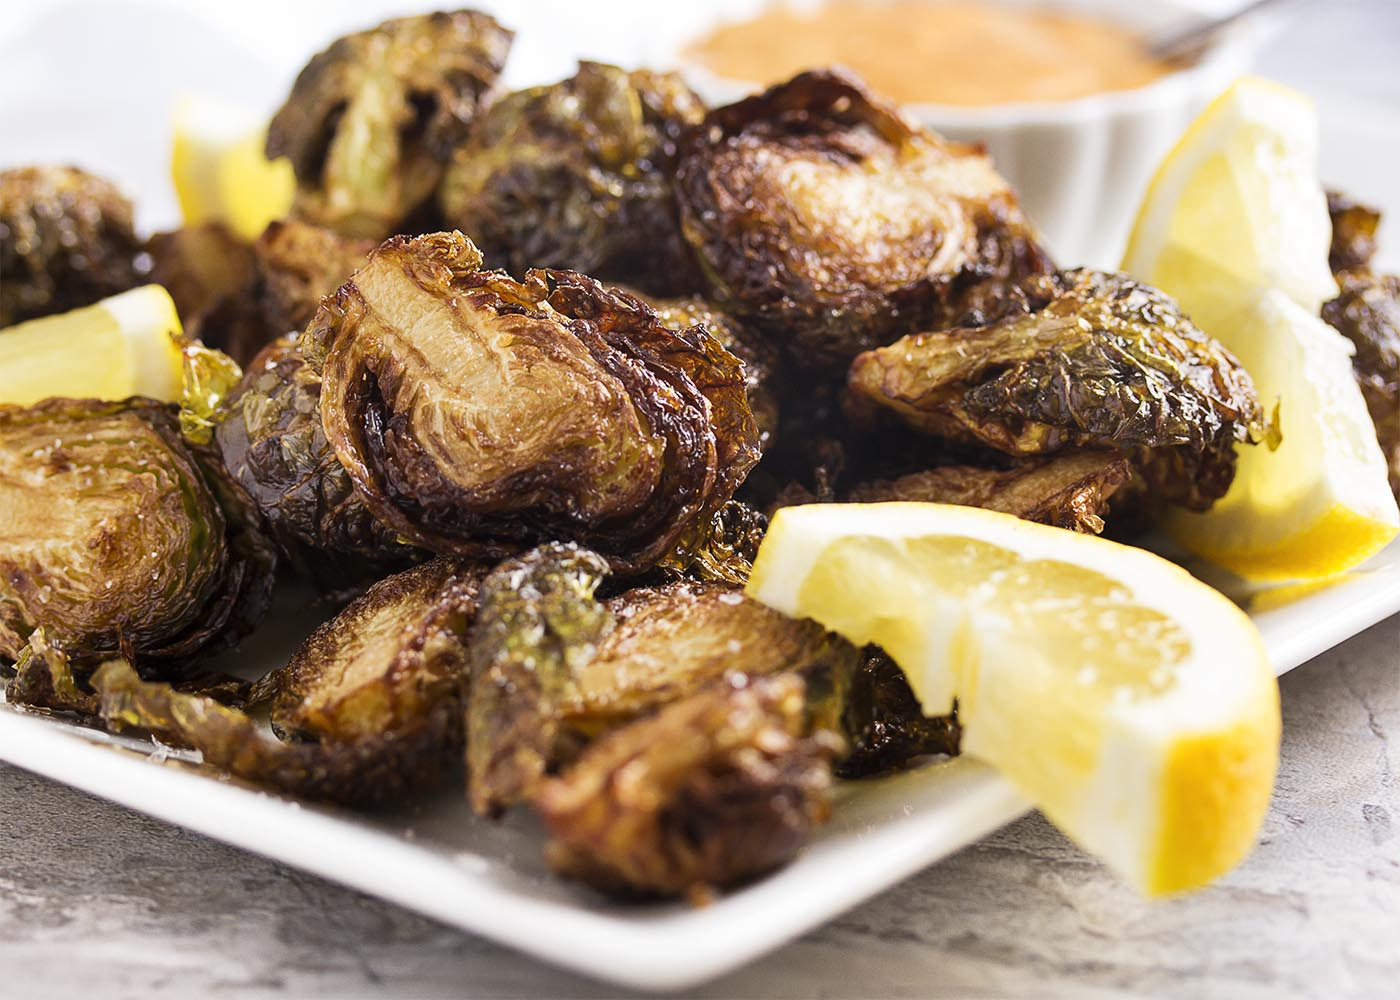 Golden brown and crispy deep fried brussels sprouts on a platter with lemon slices and maple aioli.